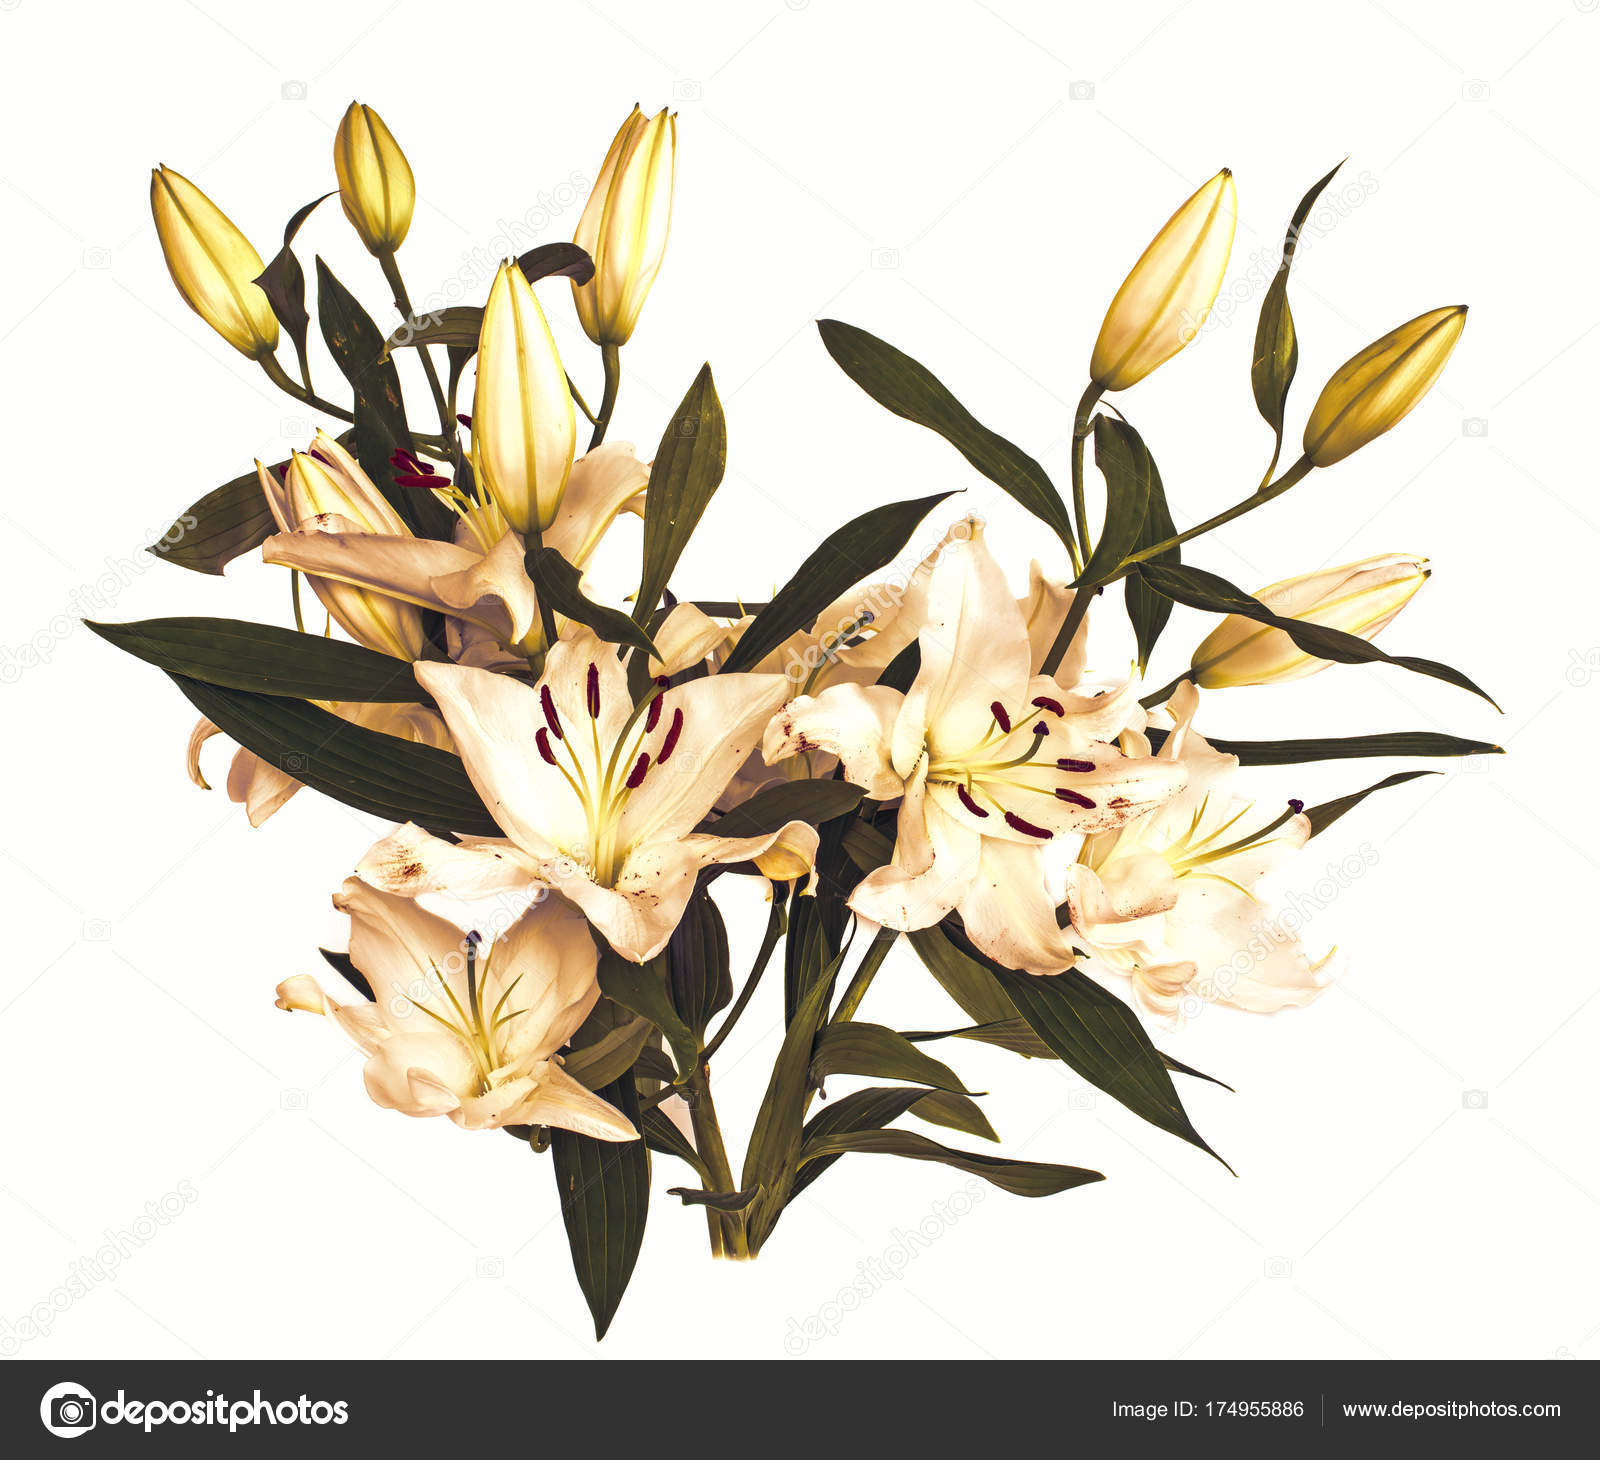 large flowers of a lily, close-up, white background. isolate ...